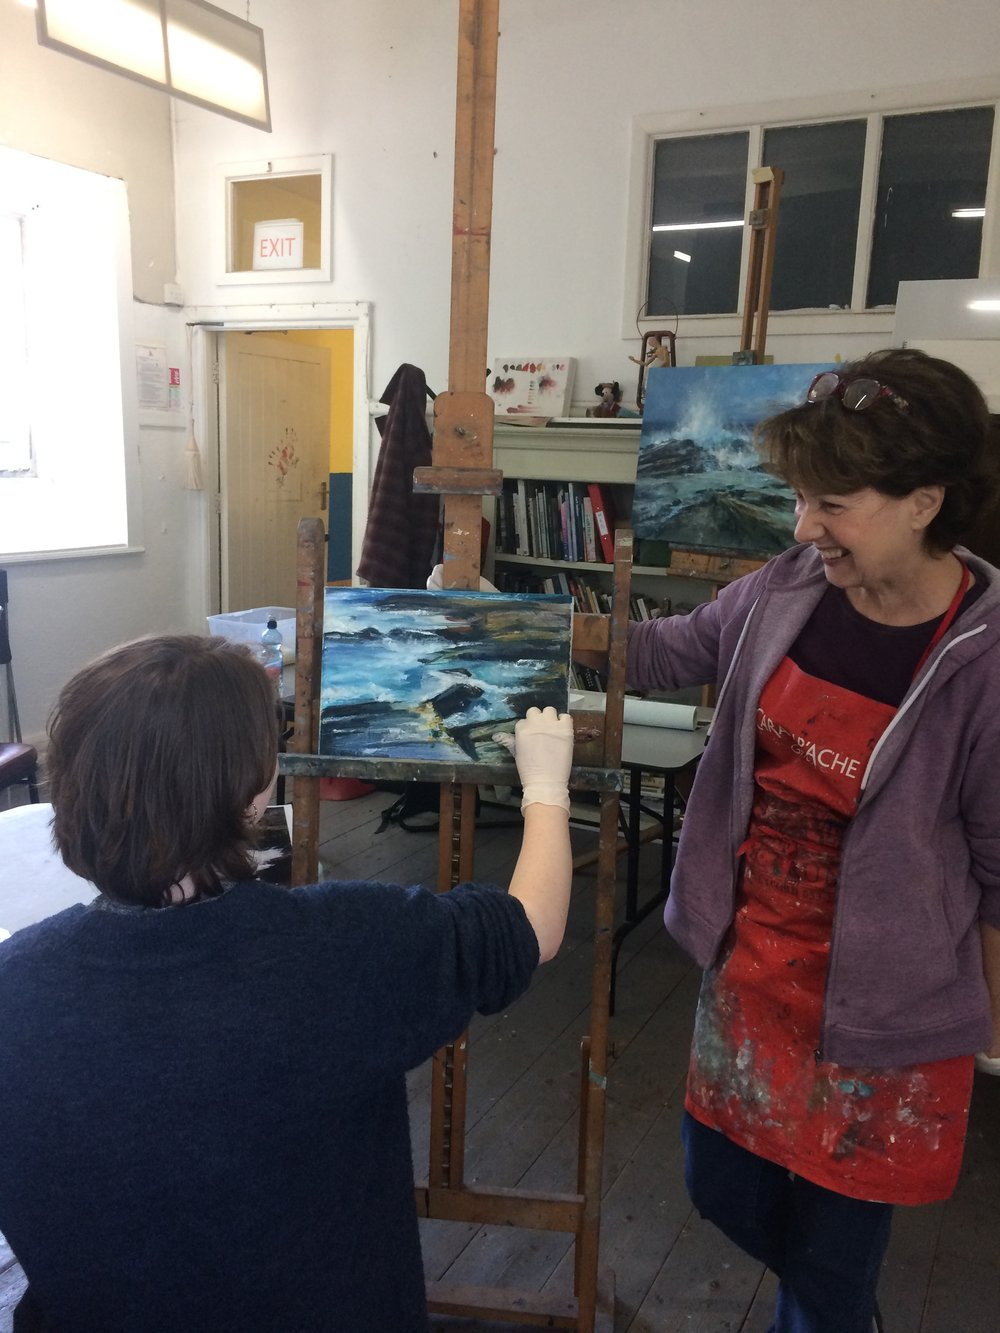 Day 2: Eimear is spending the morning under the supervision and guidance of local artist and exceptional tutor Brenda Malley. Eimear is welcoming experienced seascapes instruction. Thank you Brenda and class for moving up your easels!